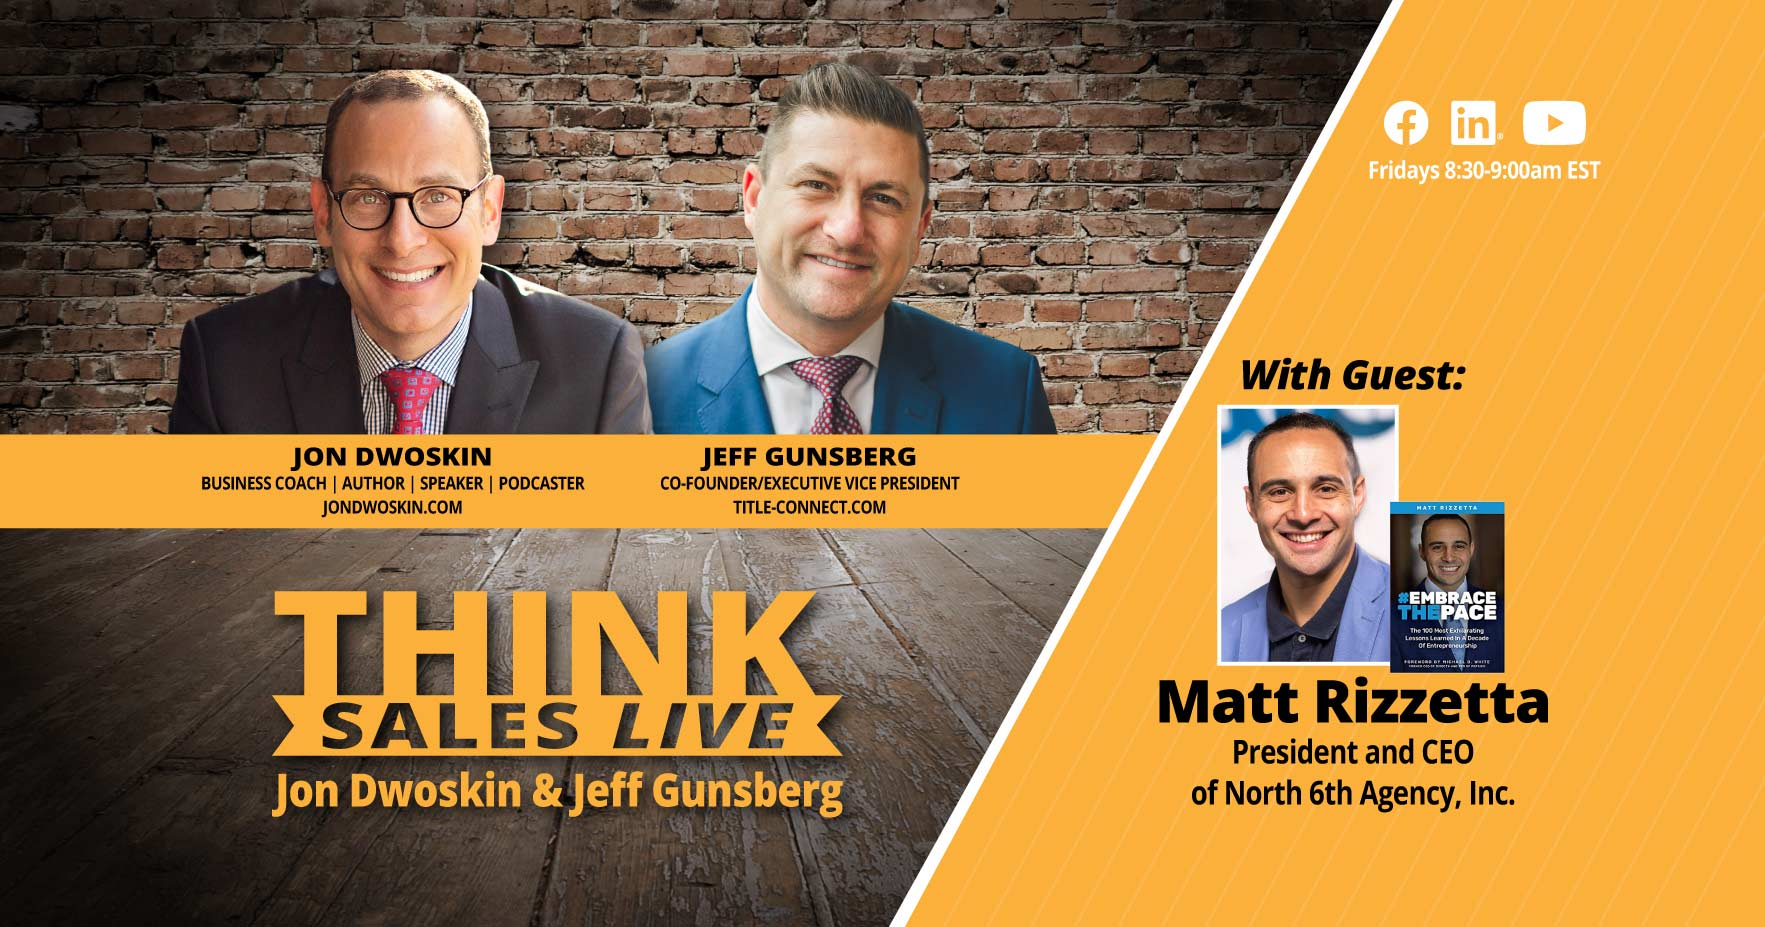 THINK Sales LIVE: Jon Dwoskin and Jeff Gunsberg Talk with Matt Rizzetta